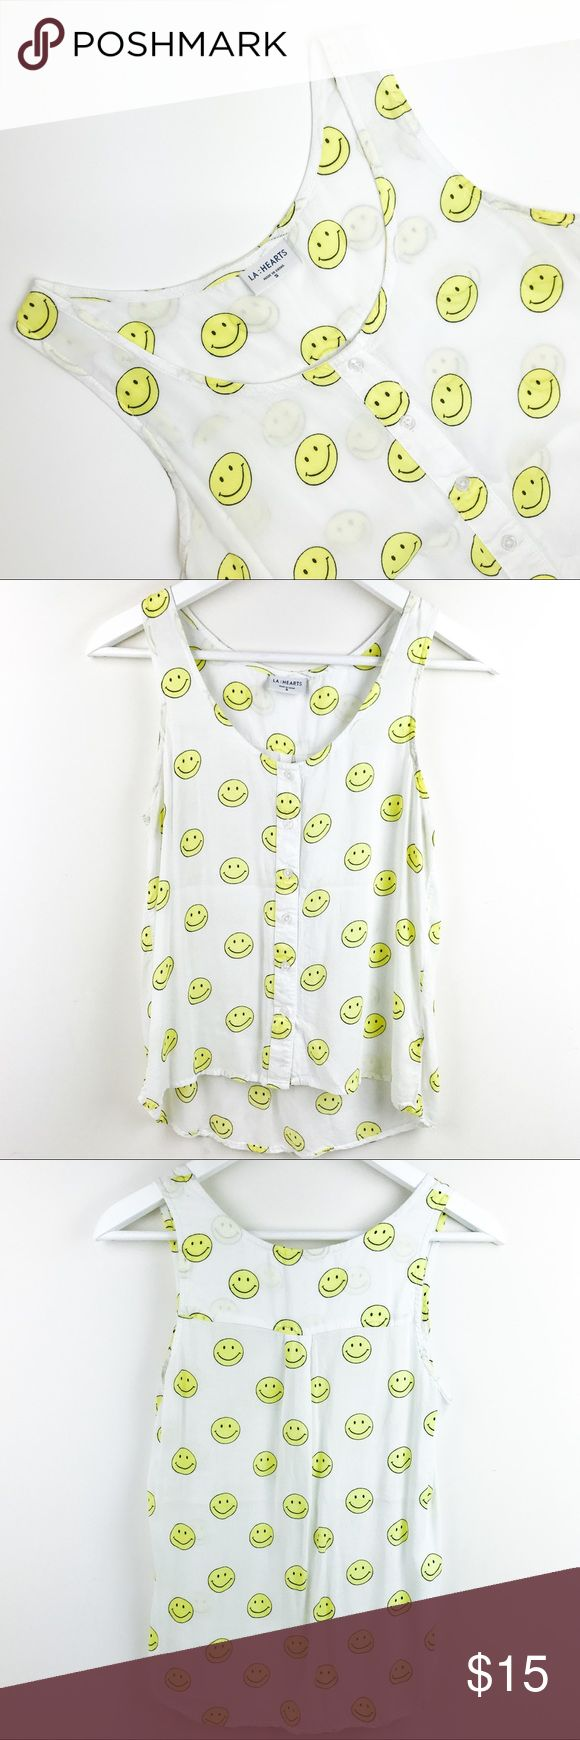 LA HEARTS smiley faces tank top 🙂 Perfect for the summer.🌼 Cute, fun and comfy! True to size. In great condition! 🙂 La Hearts Tops Tank Tops